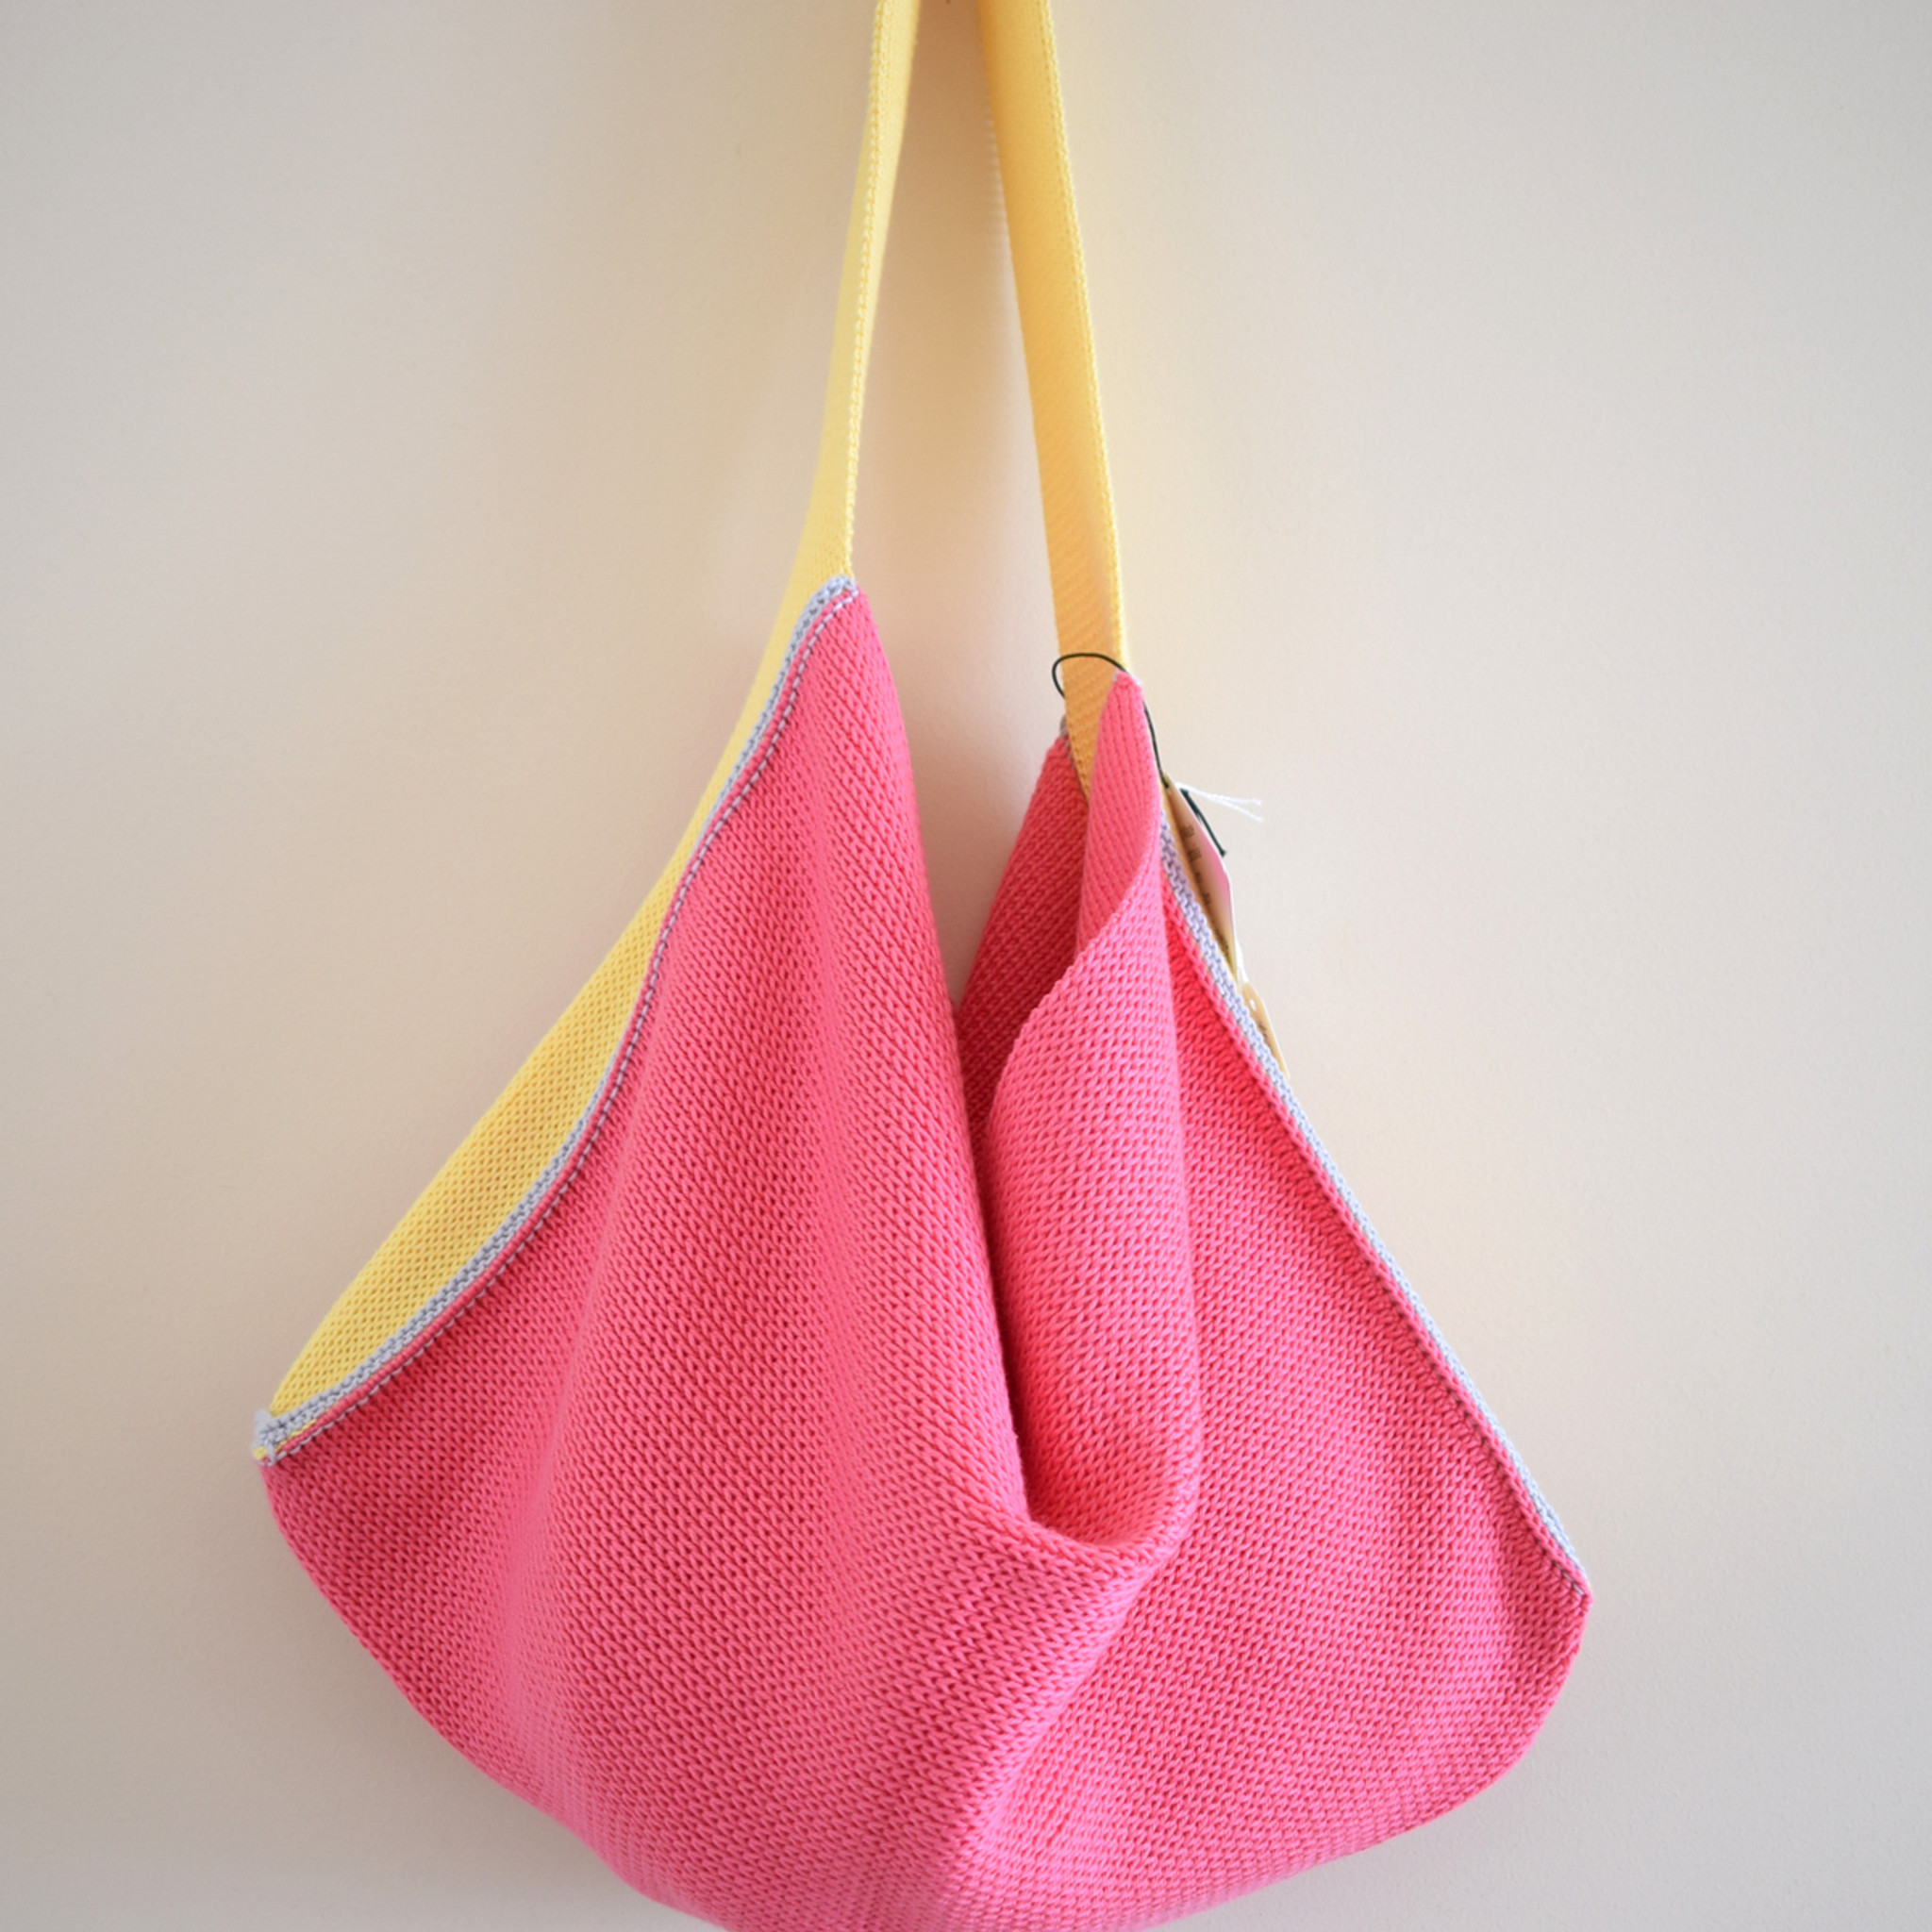 d0ca4beb40 Knitted Cotton Tote Bag - Pink with Yellow Strap